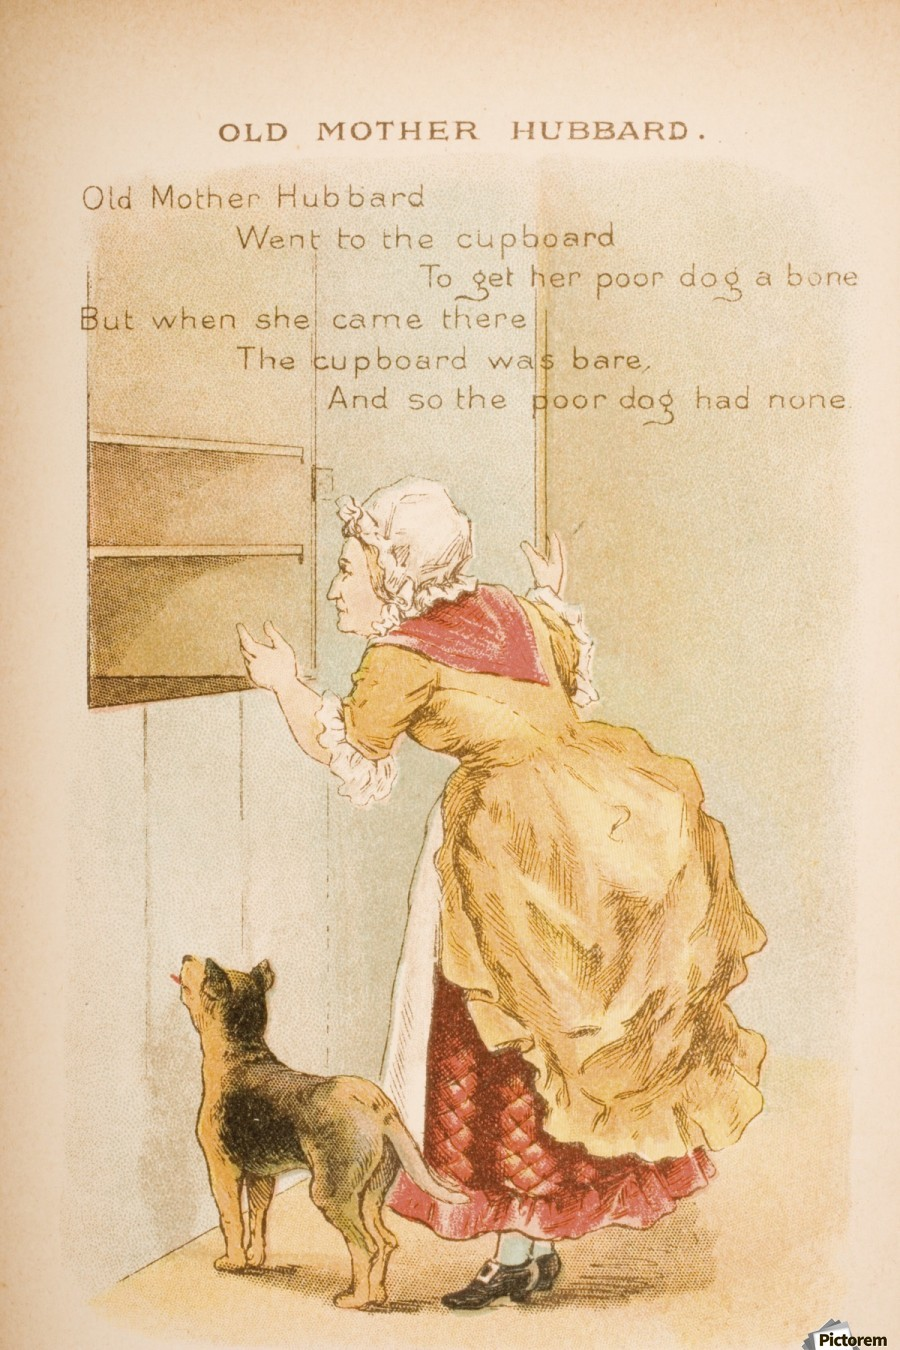 Old Mother Hubbard from Old Mother Goose's Rhymes and Tales  Illustration by Constance Haslewood  Published by Frederick Warne & Co London and New York circa 1890s  Chromolithography by Emrik & Binger of Holland  Print